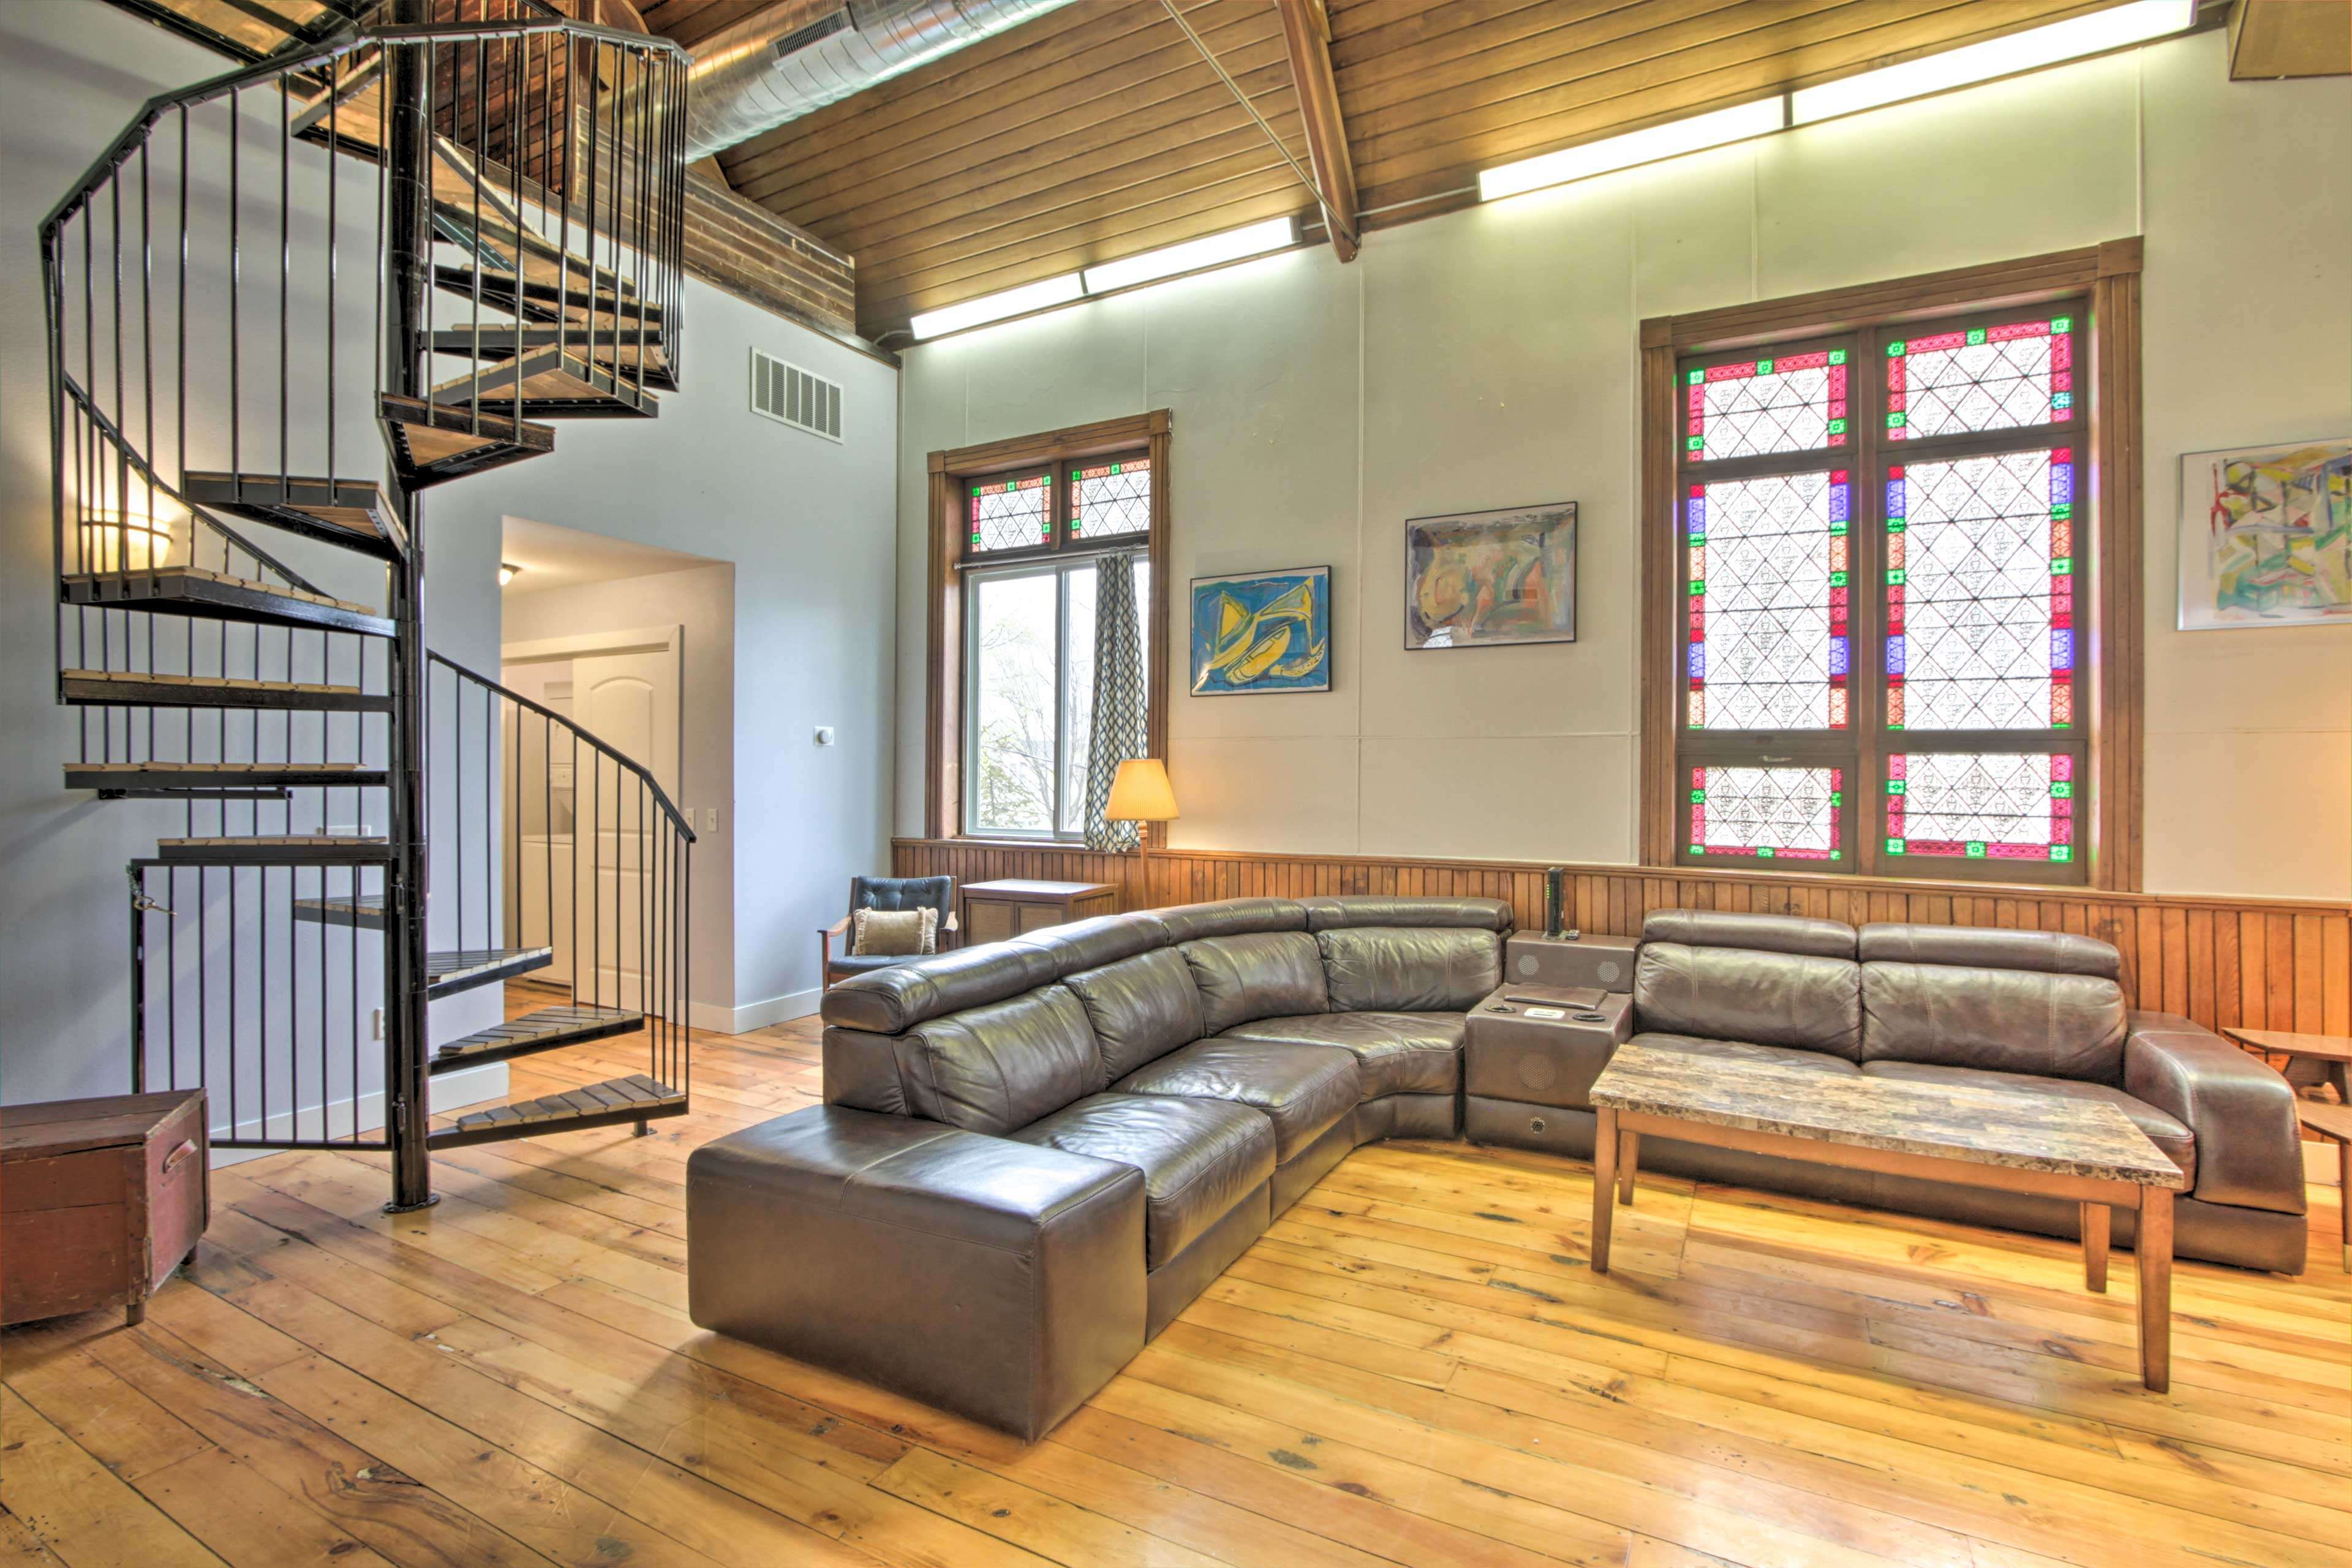 Main Living Space | Original Stained Glass Throughout